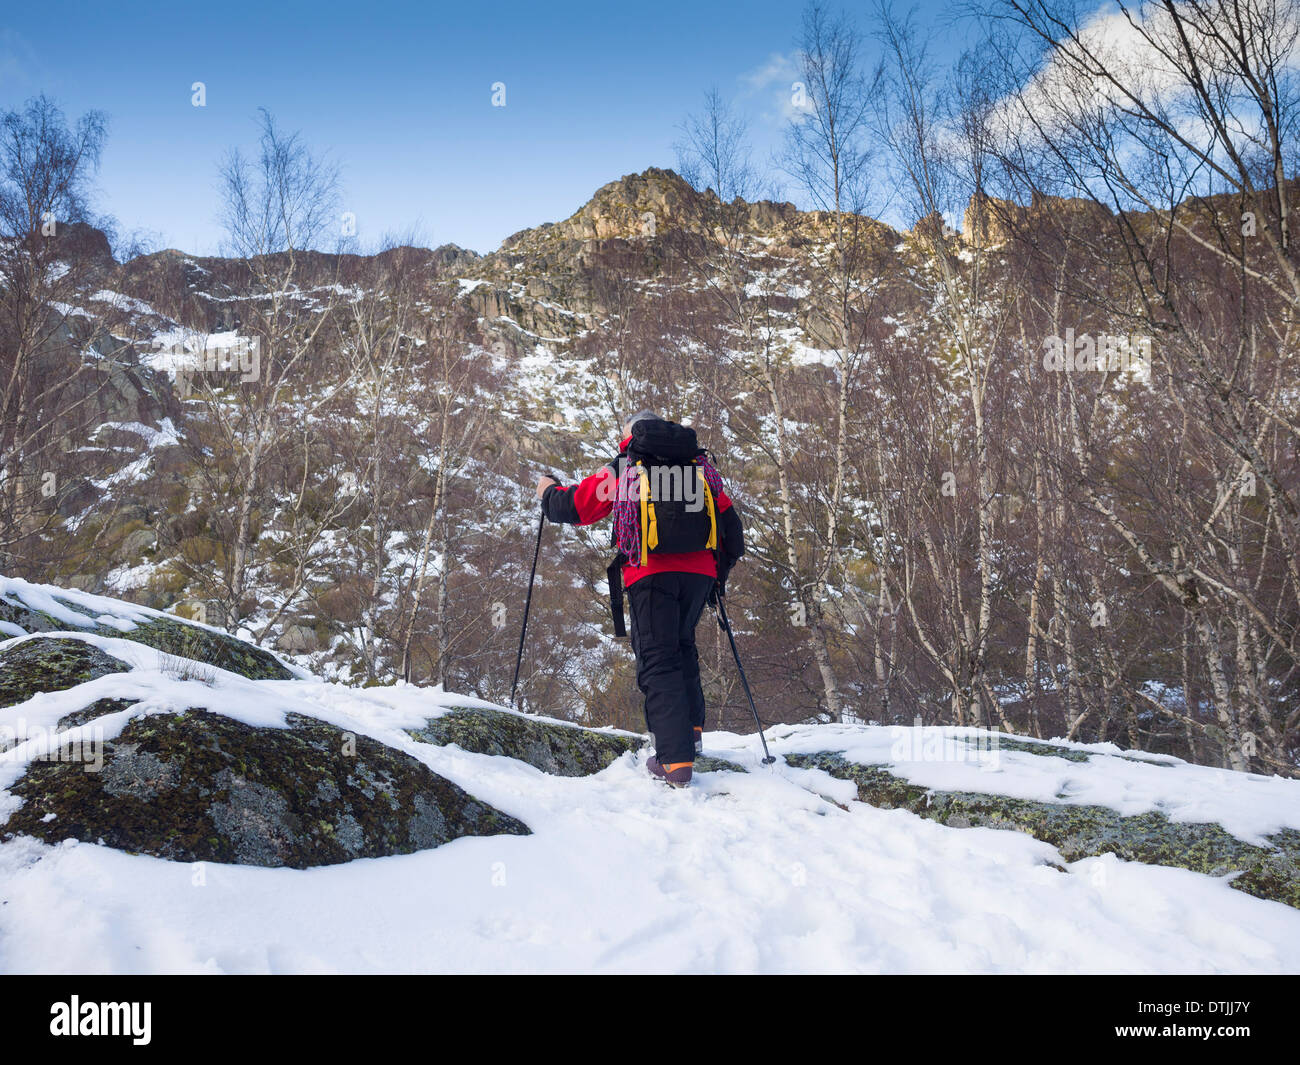 Hiker climbing a mountain covered in snow in the Winter - Stock Image